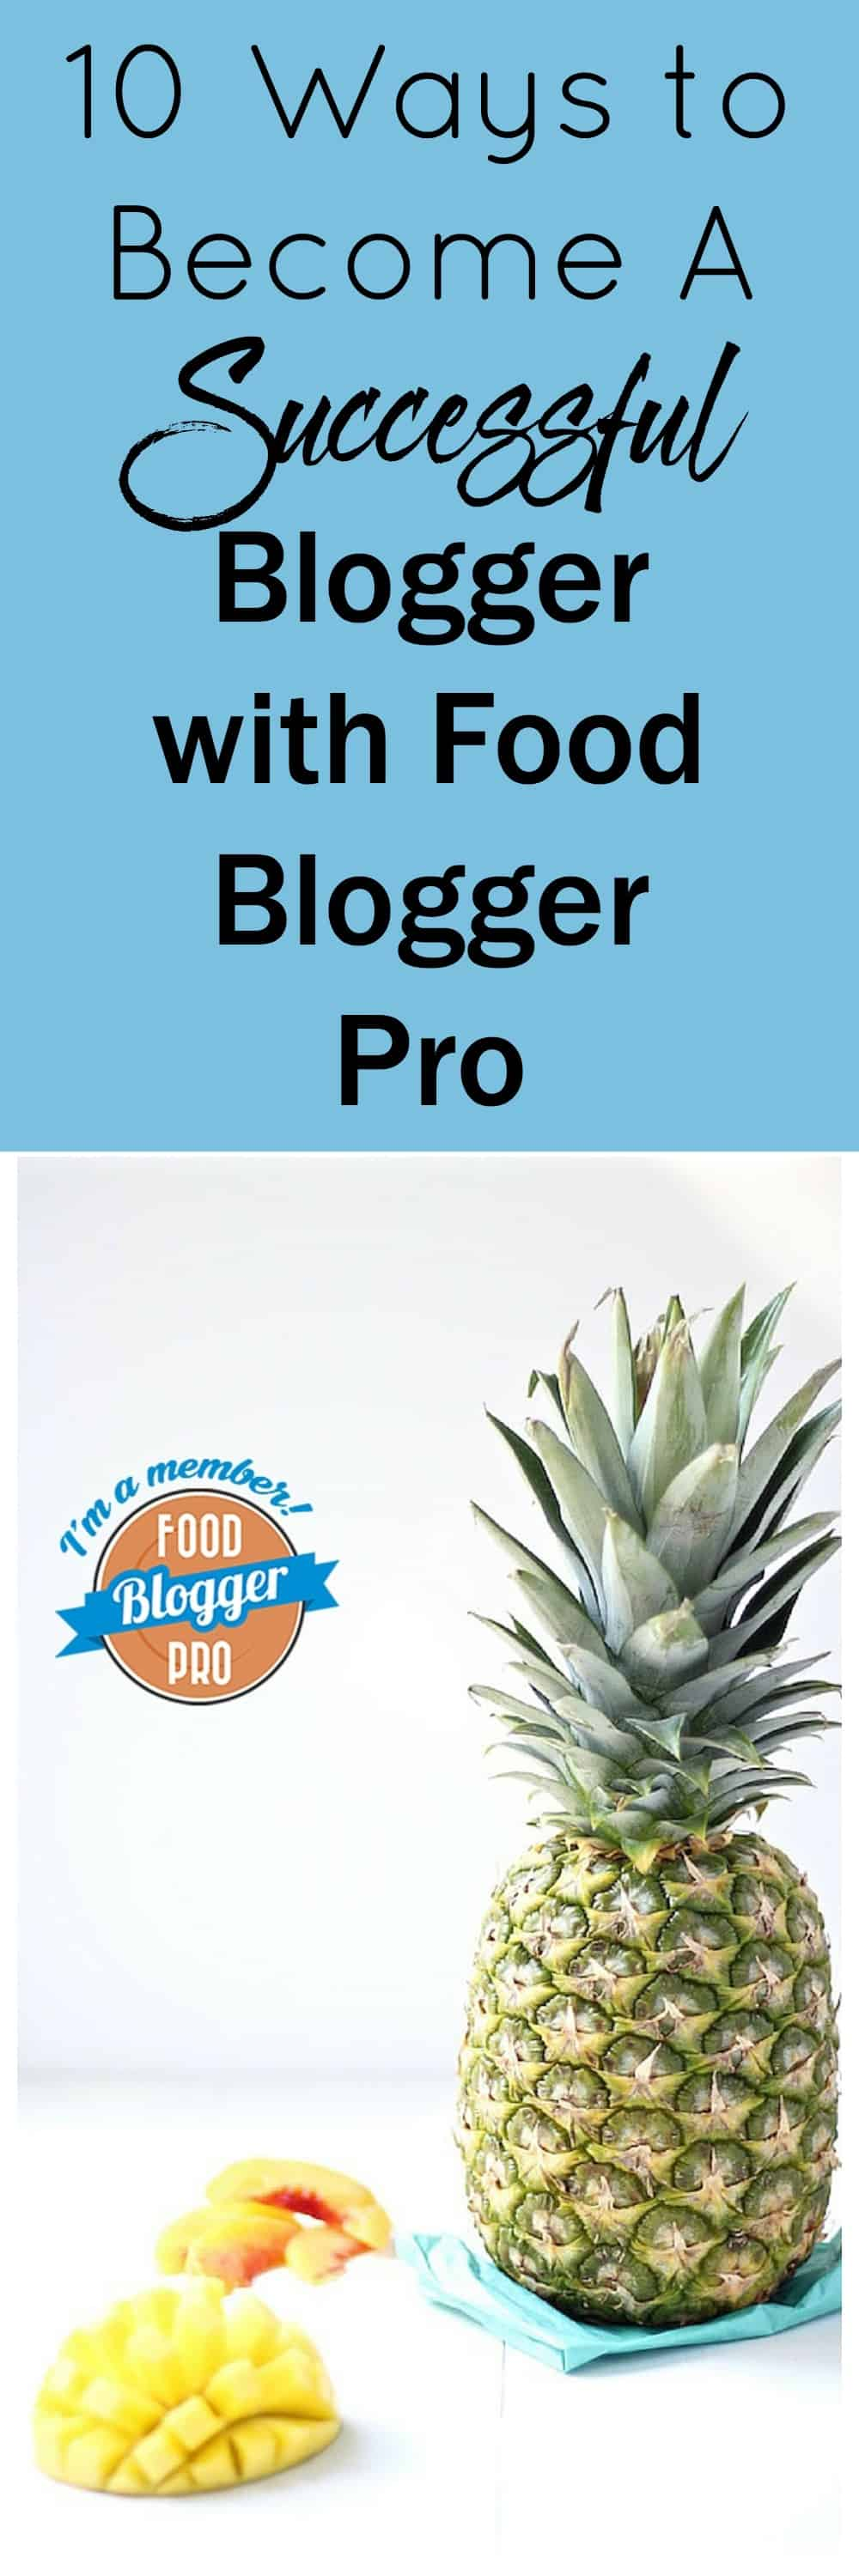 10 ways to become a successful blogger food blogger pro pinterest